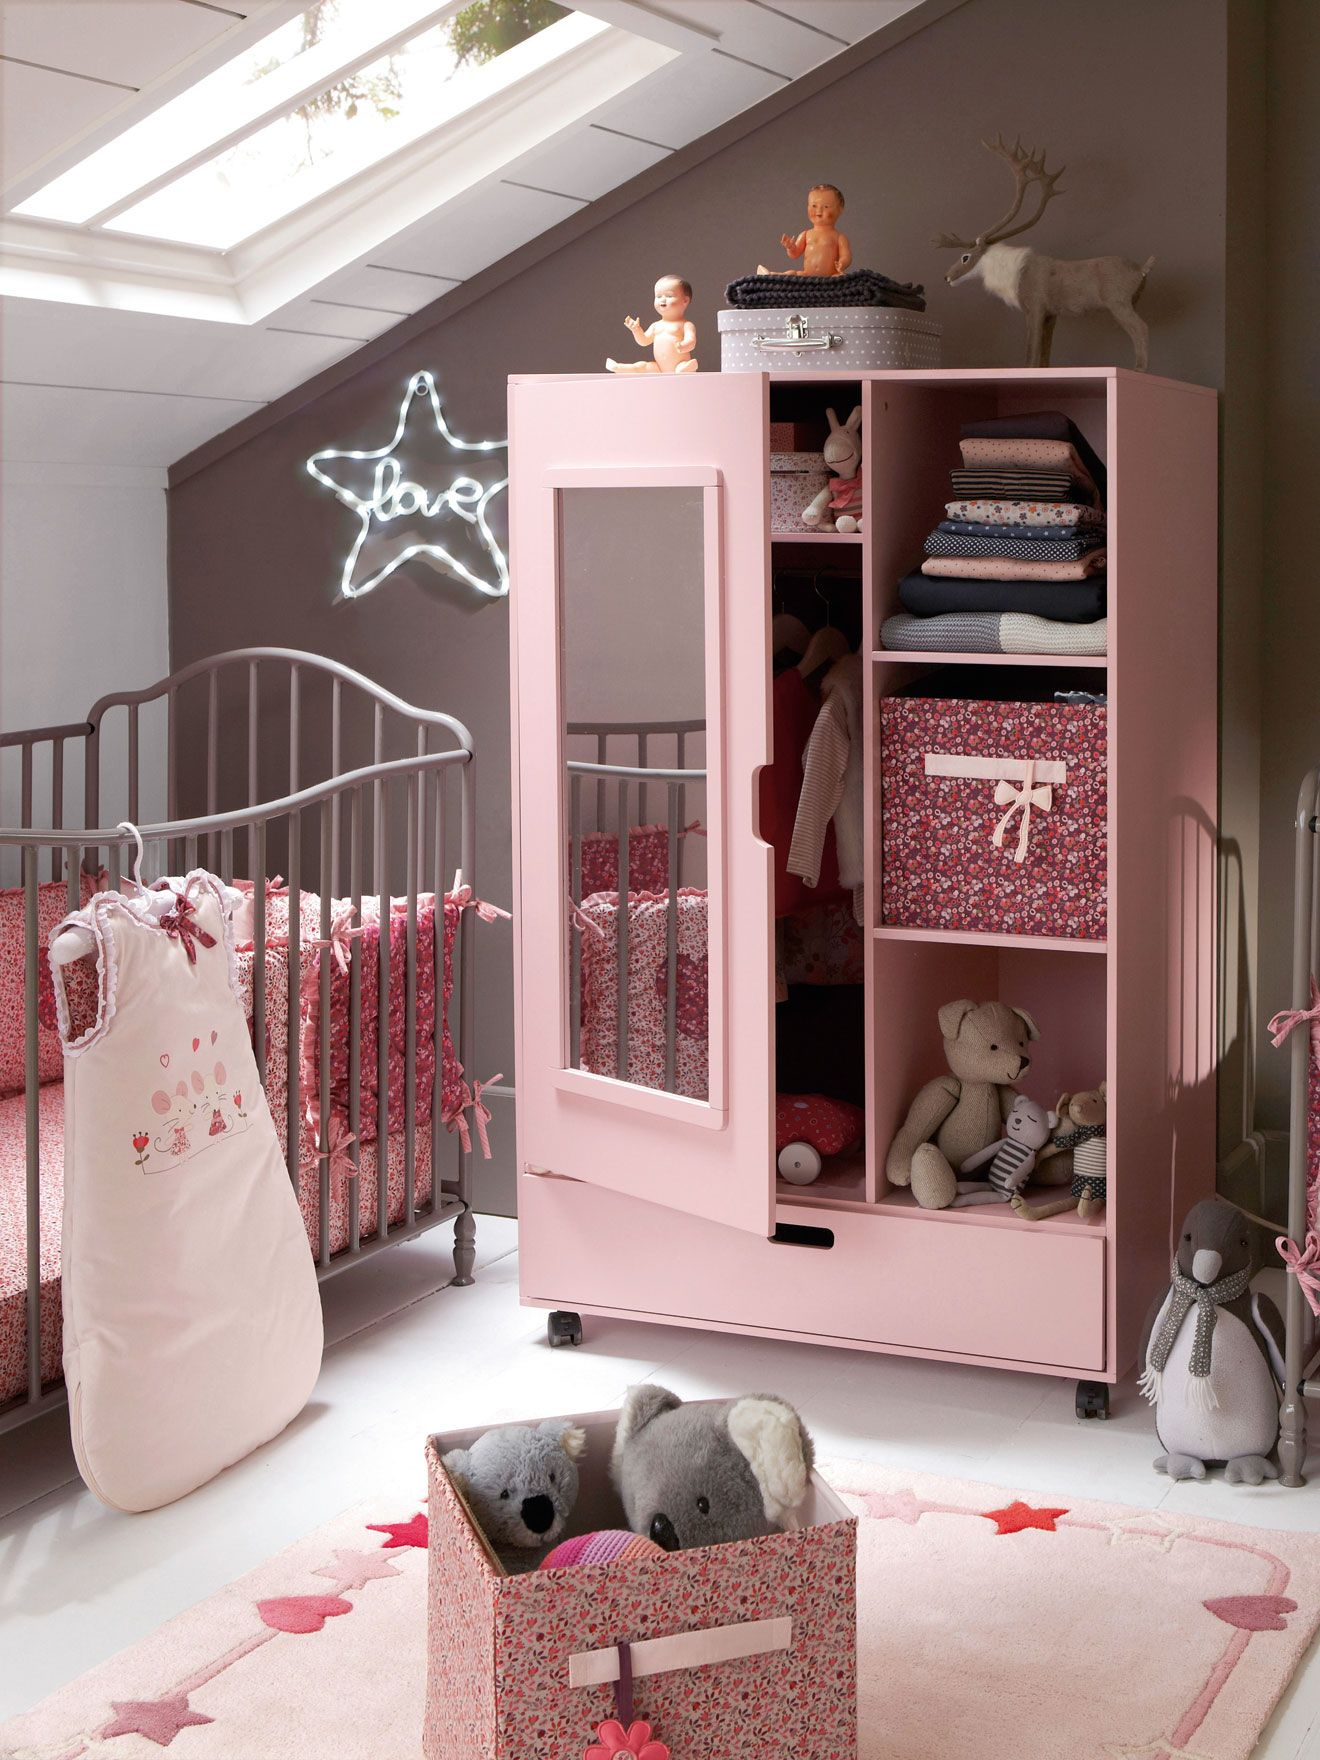 tapis b b th me baby souris chambre b b d coration nursery gar on fille. Black Bedroom Furniture Sets. Home Design Ideas